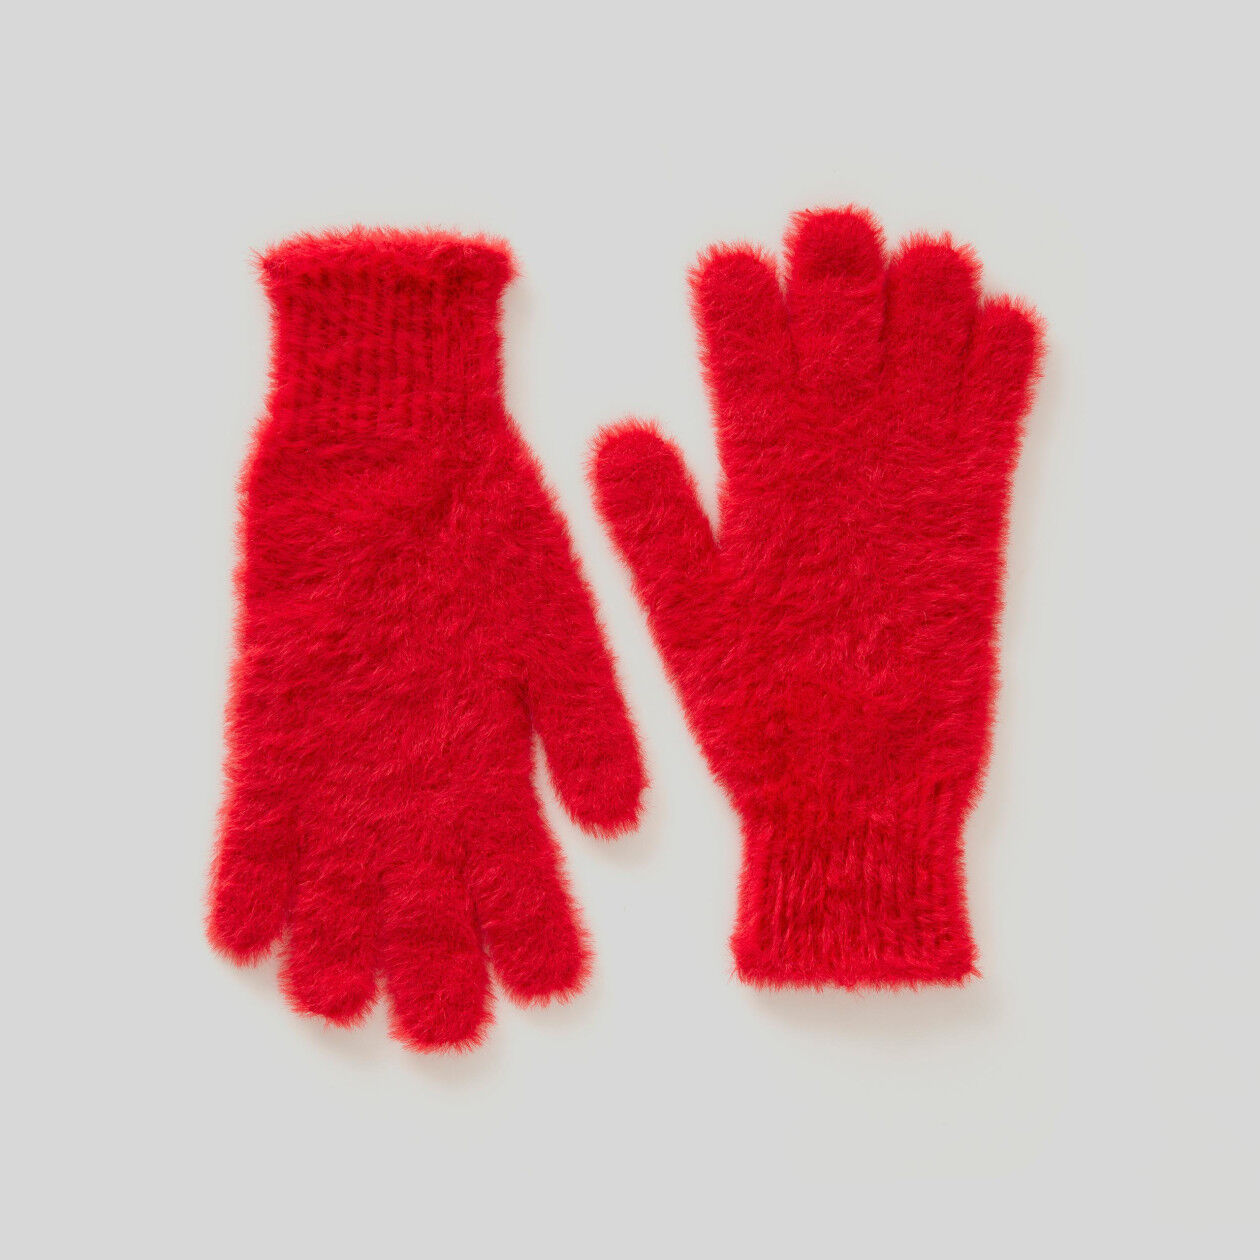 Gloves in long-haired yarn